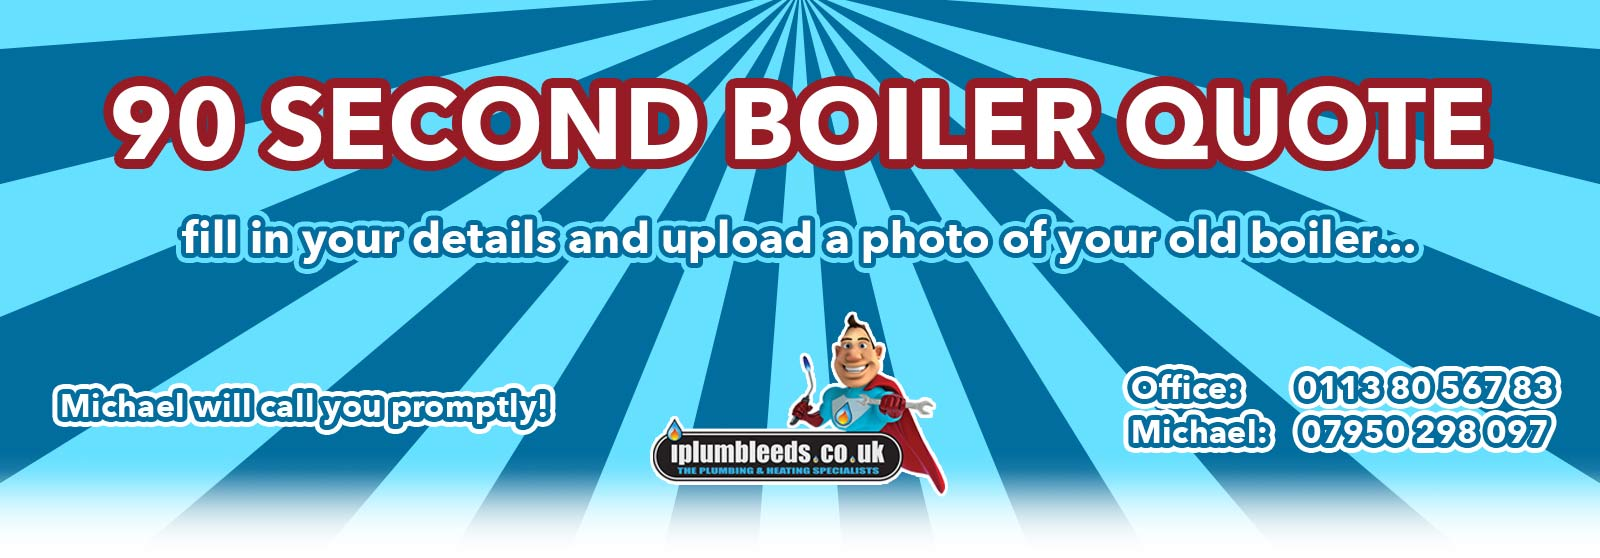 iPlumb 90 second boiler quote service